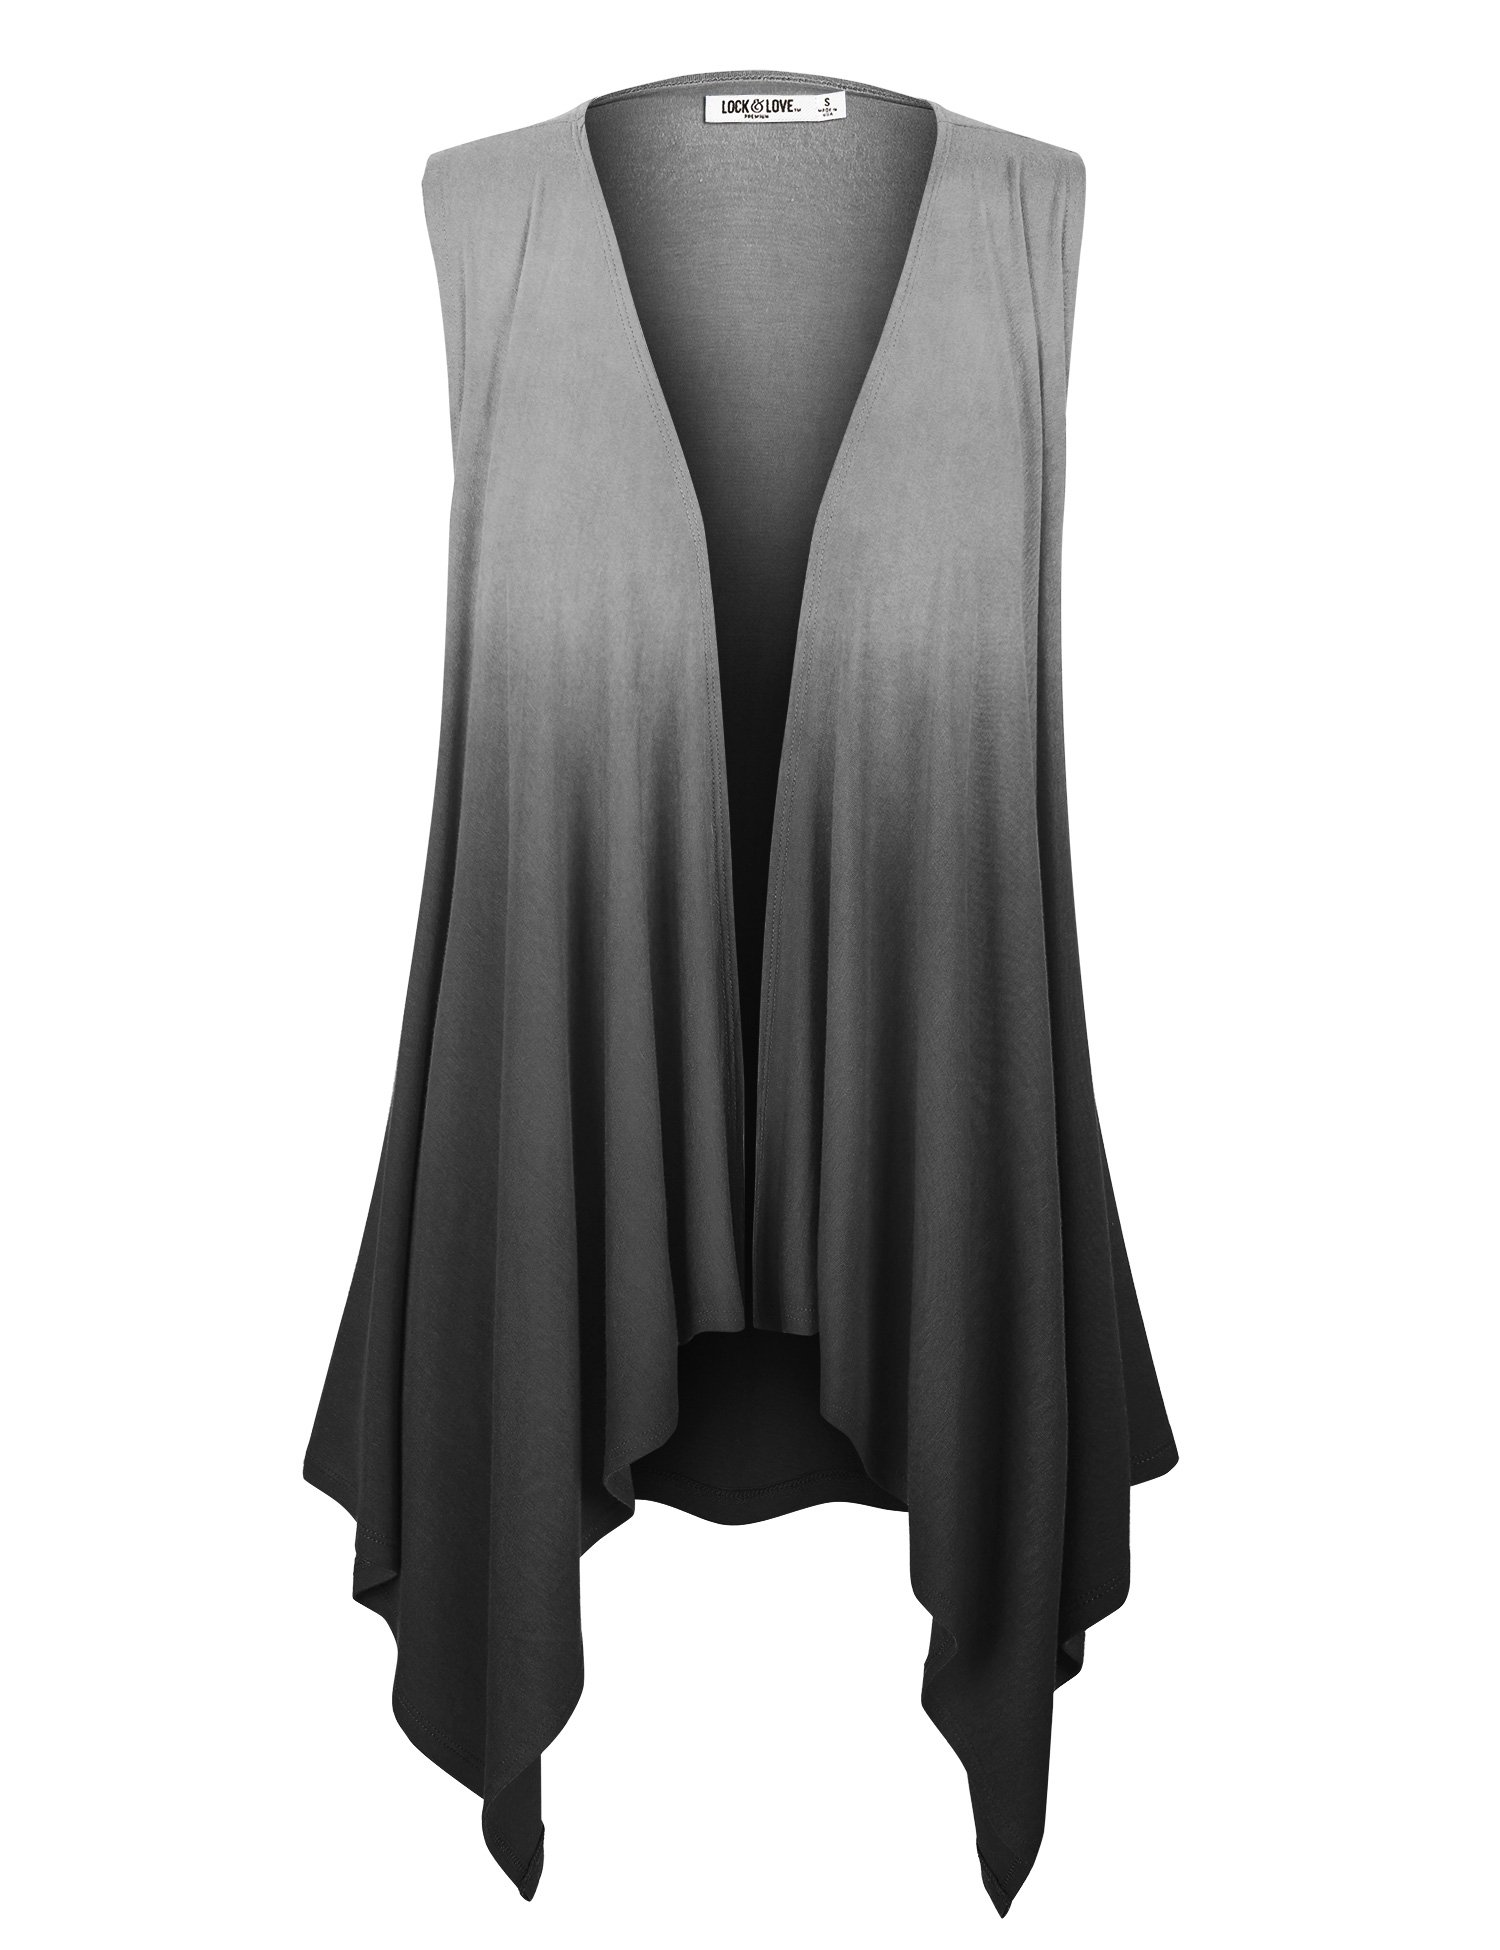 69f9d0d8f8144 LL Womens Lightweight Sleeveless Ombre Open Front Cardigan Vest - Made in  USA